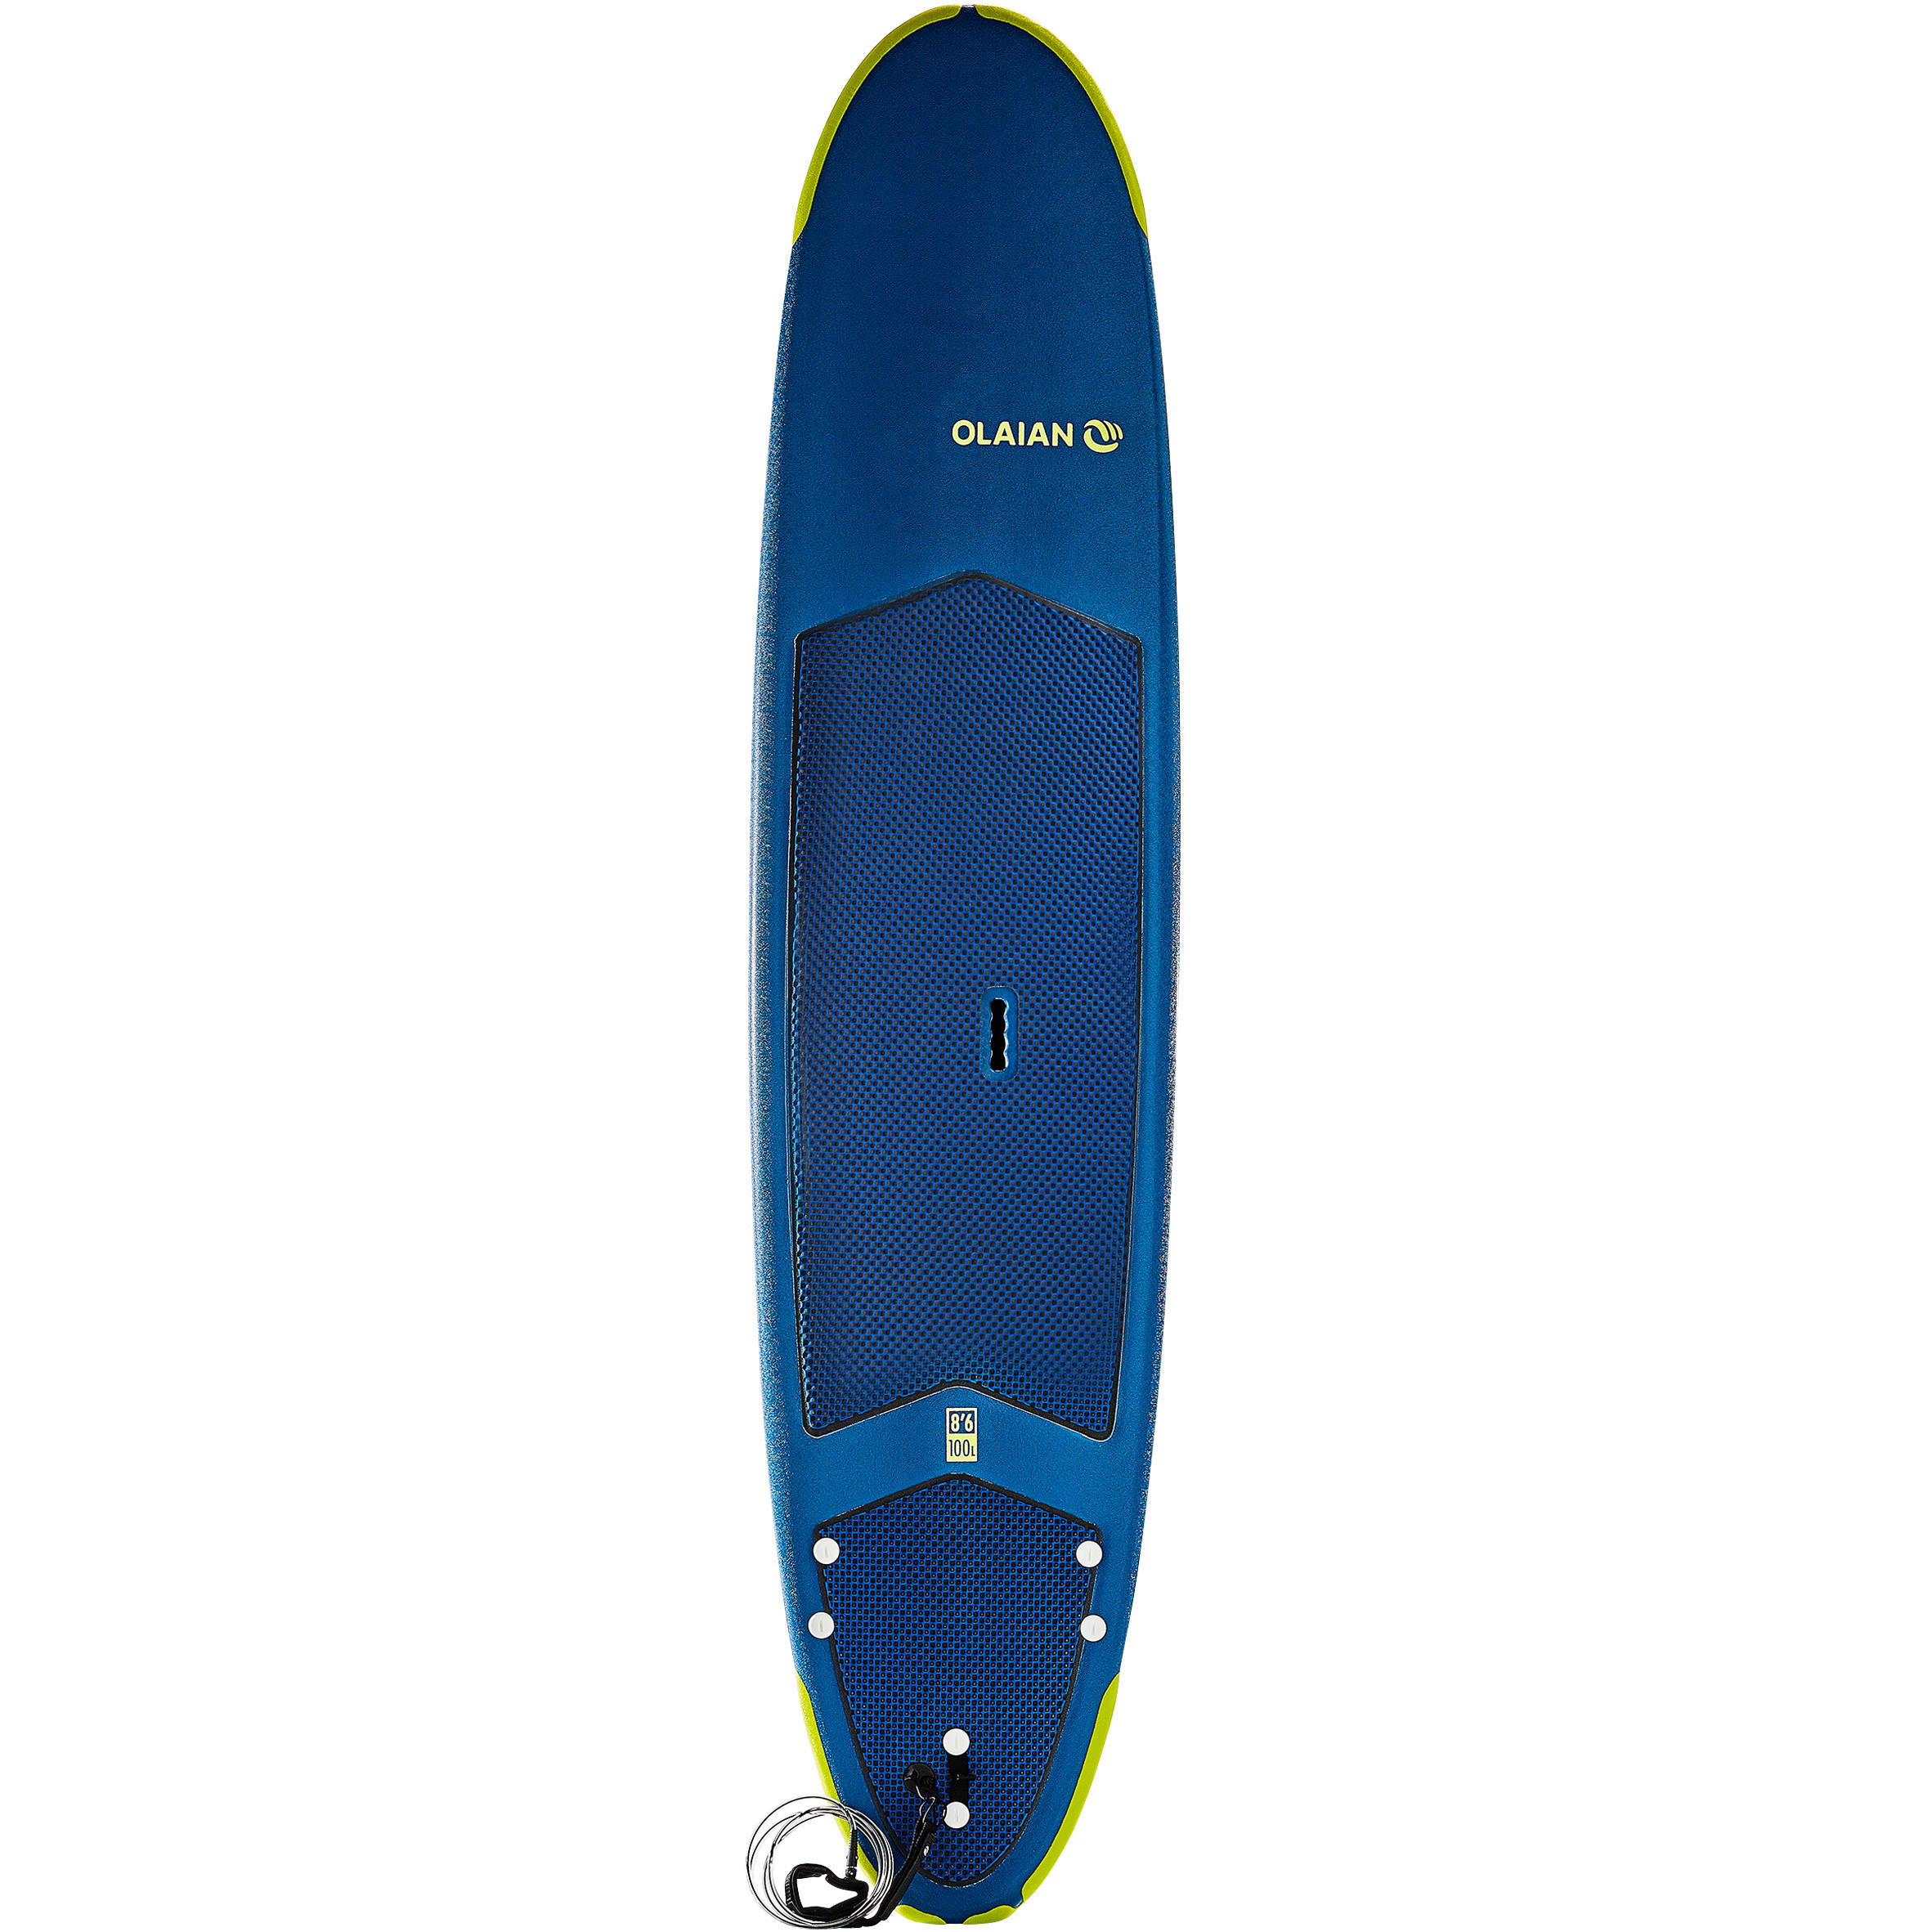 500 Foam Surfboard 8'6_QUOTE2_. Supplied with a leash and 3 fins.